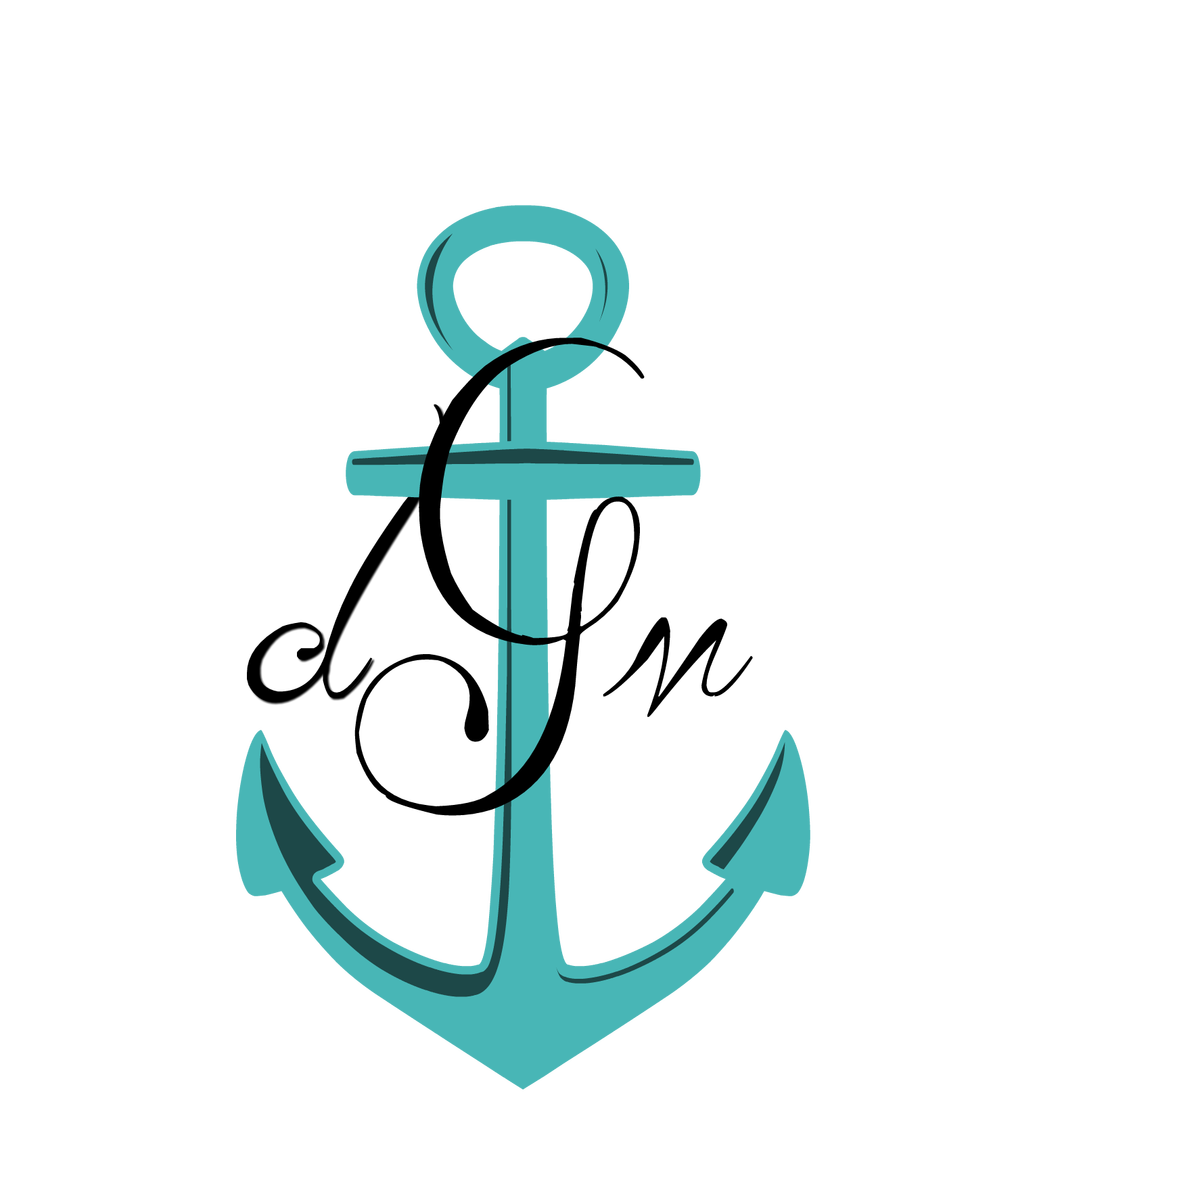 Clipart anchor aqua. Dmg monogram doc laura